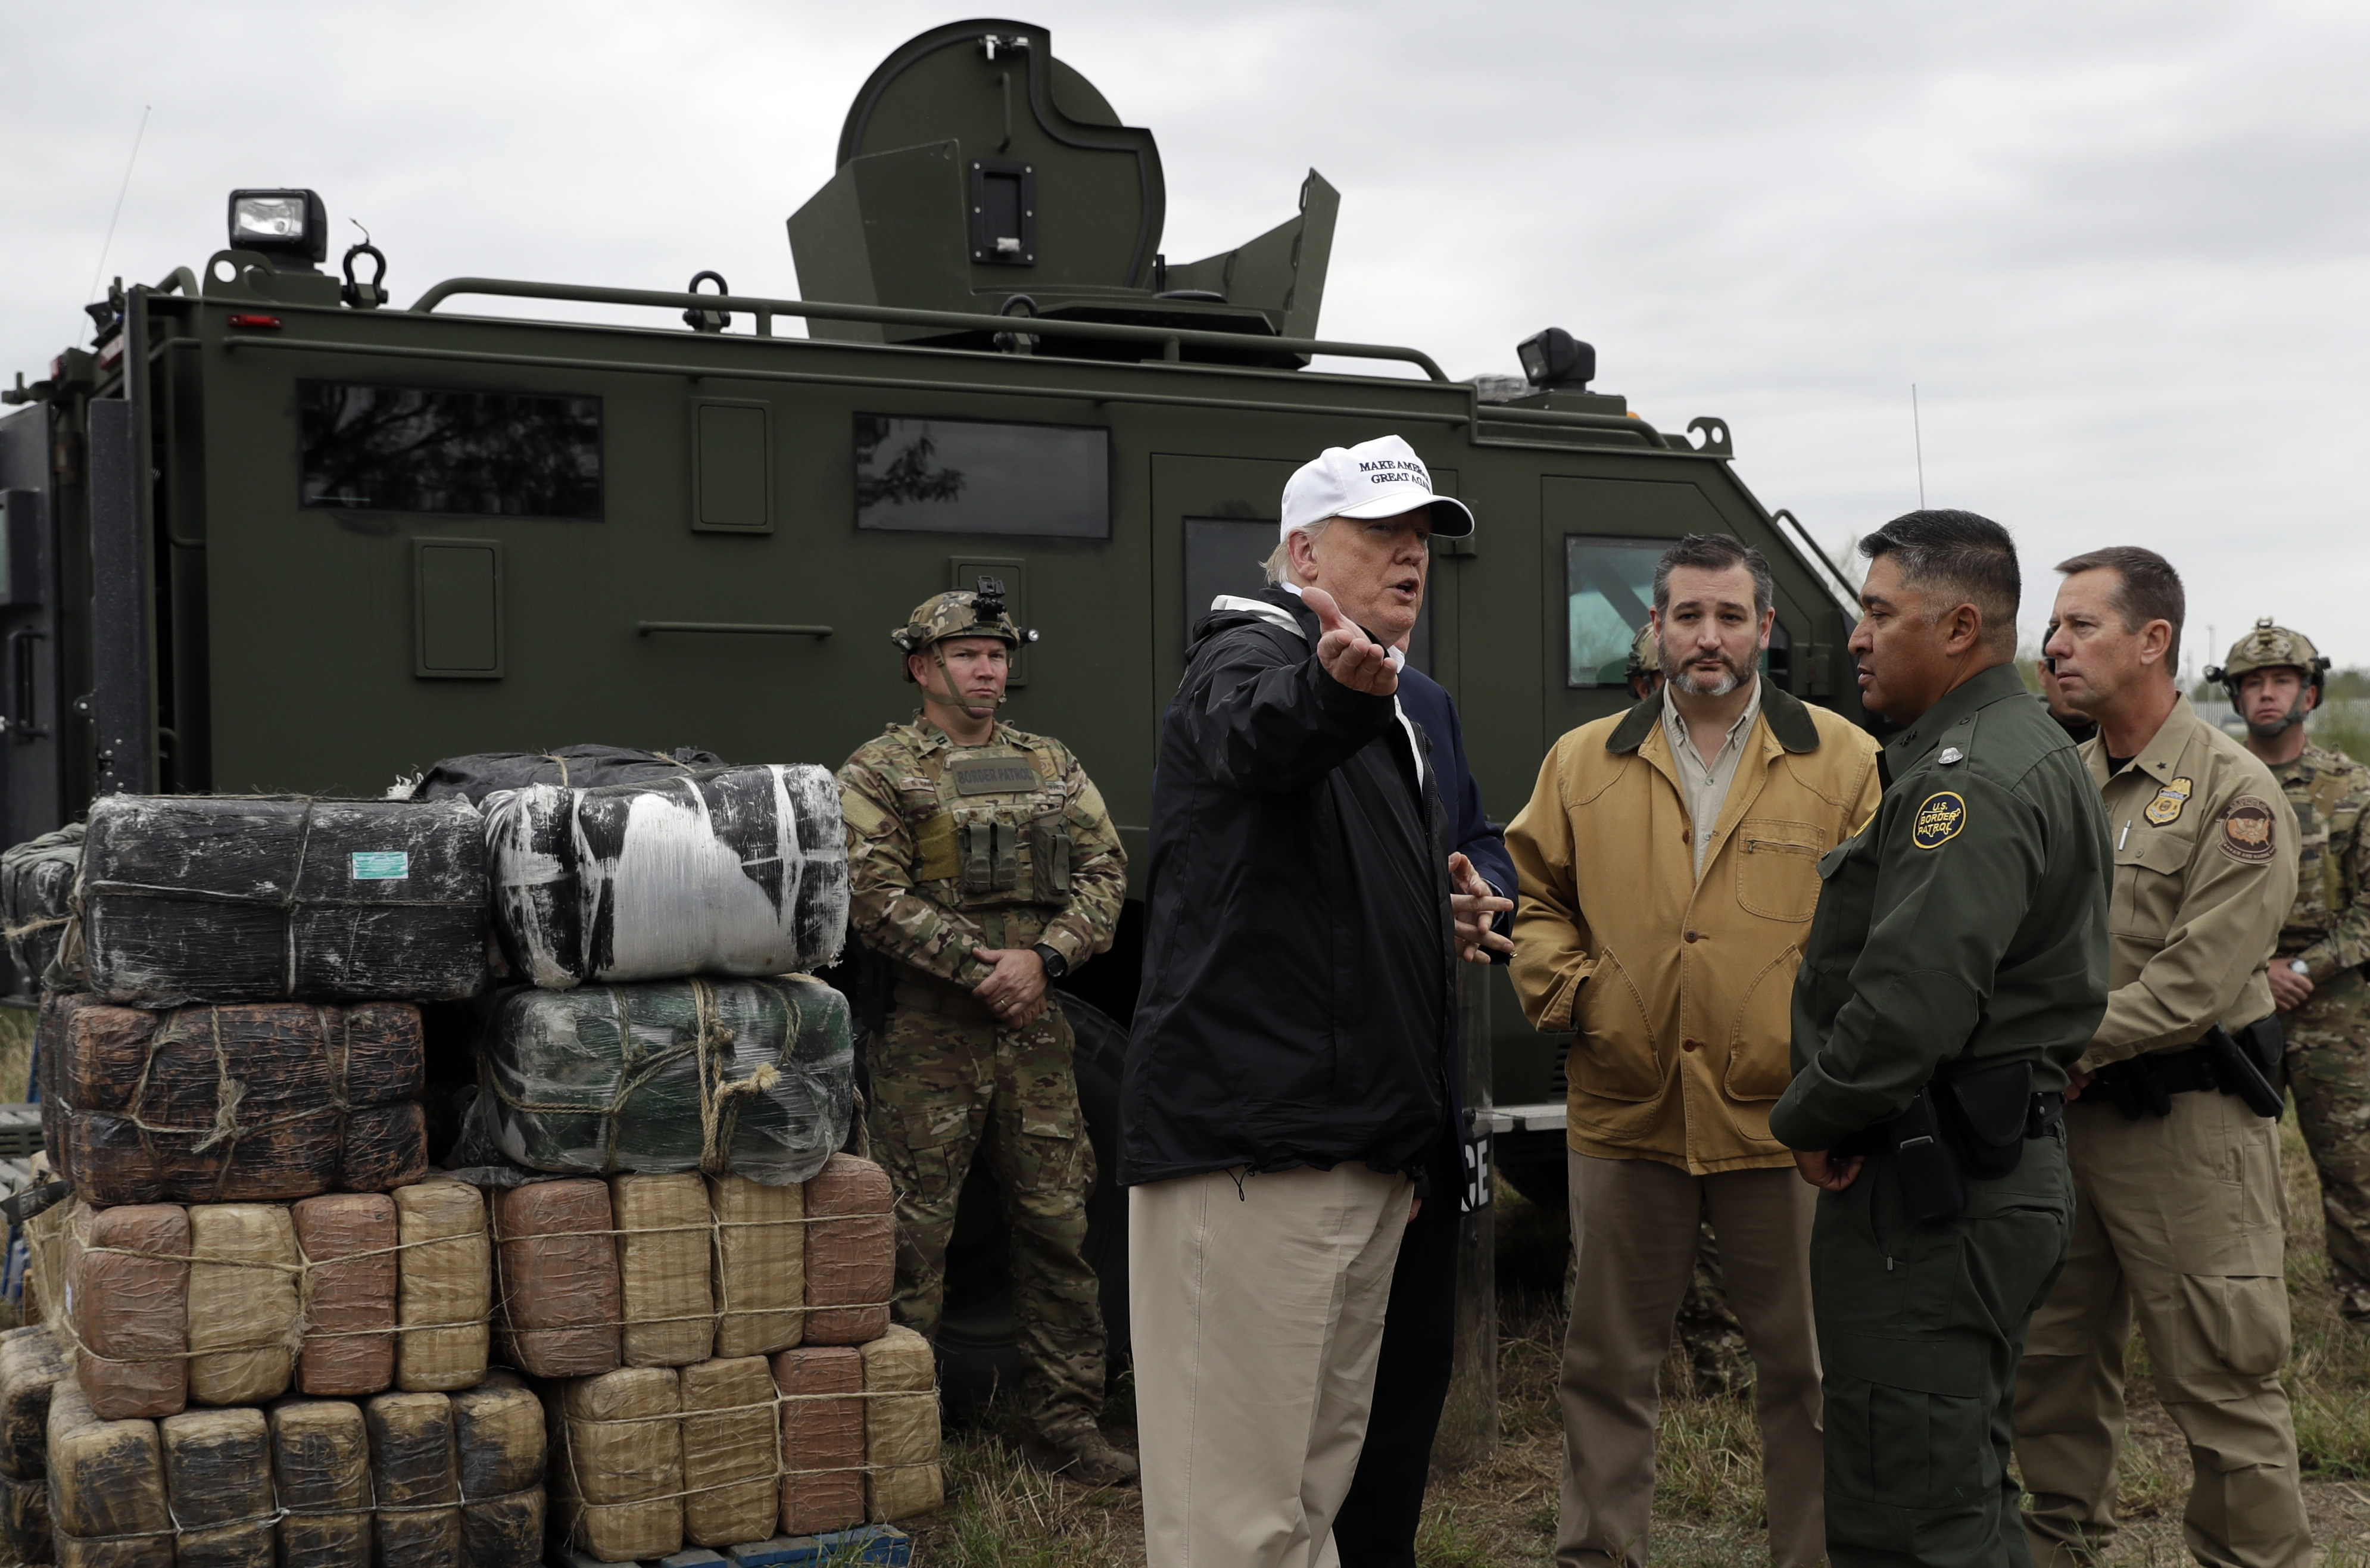 President Donald Trump tours the U.S. border with Mexico at the Rio Grande on the southern border in McAllen, Texas, Jan. 10, 2019.